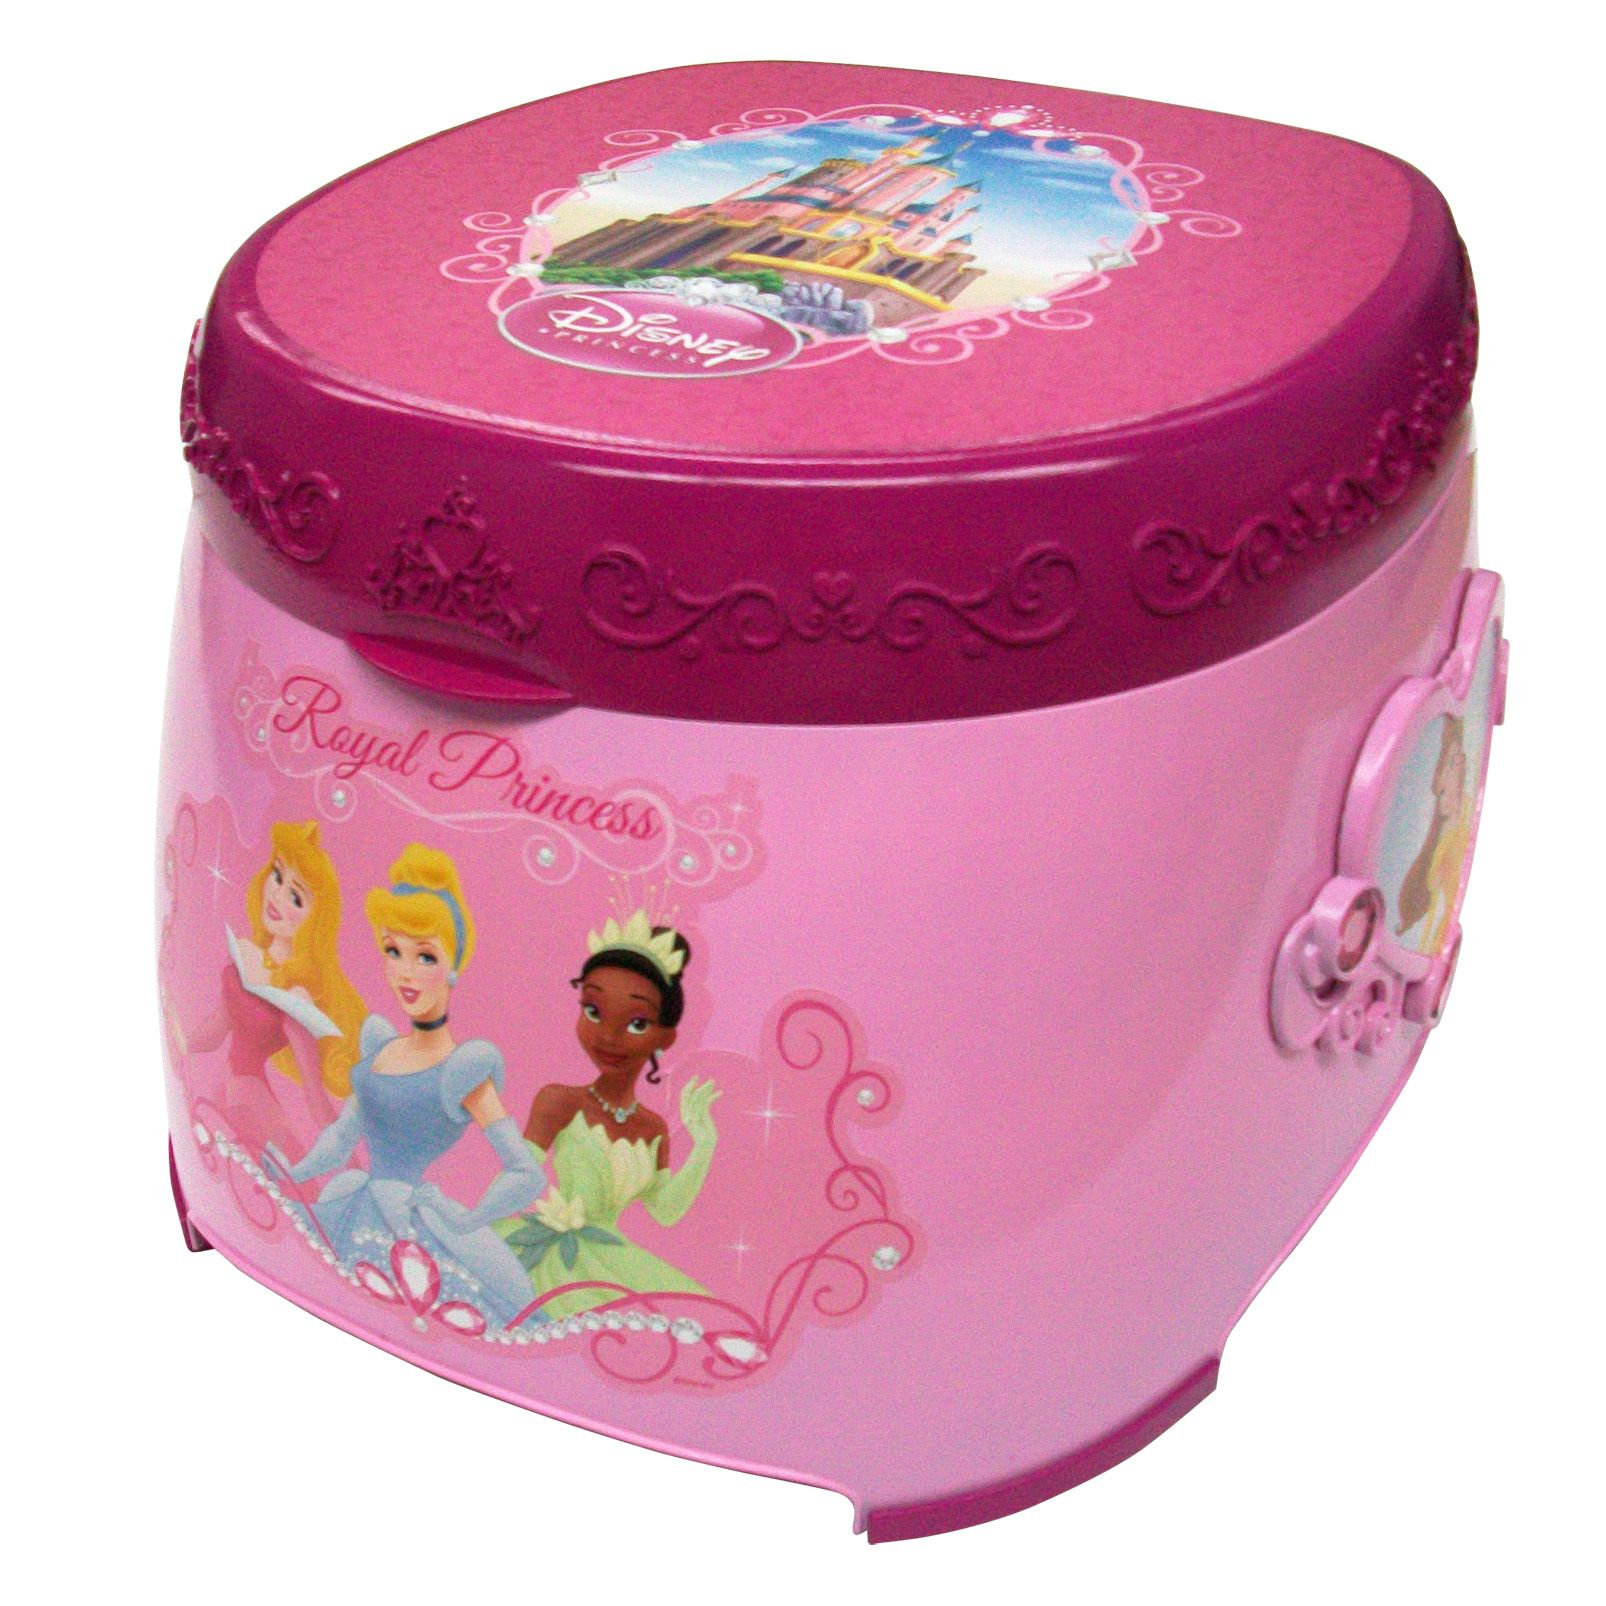 Royal Princess 3 in 1 Potty Trainer